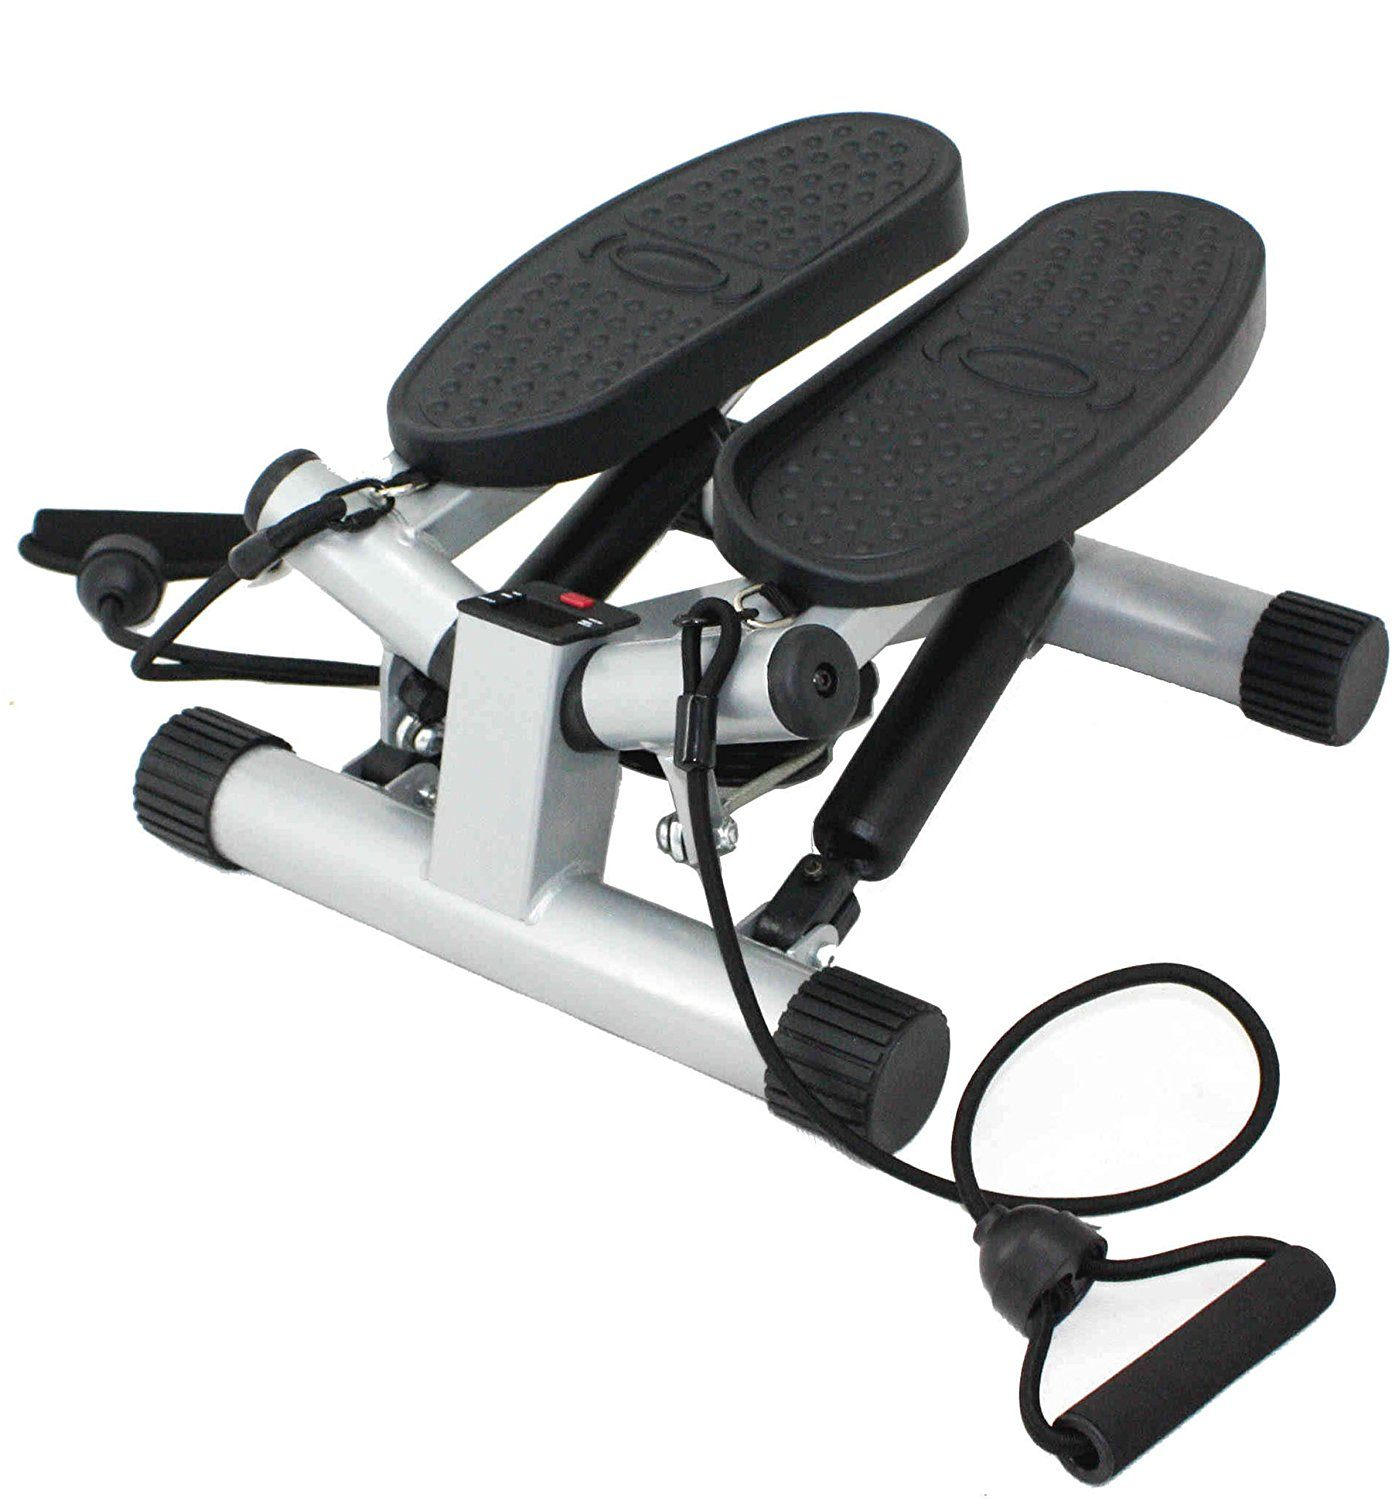 Sunny Health & Fitness Twisting Stair Stepper